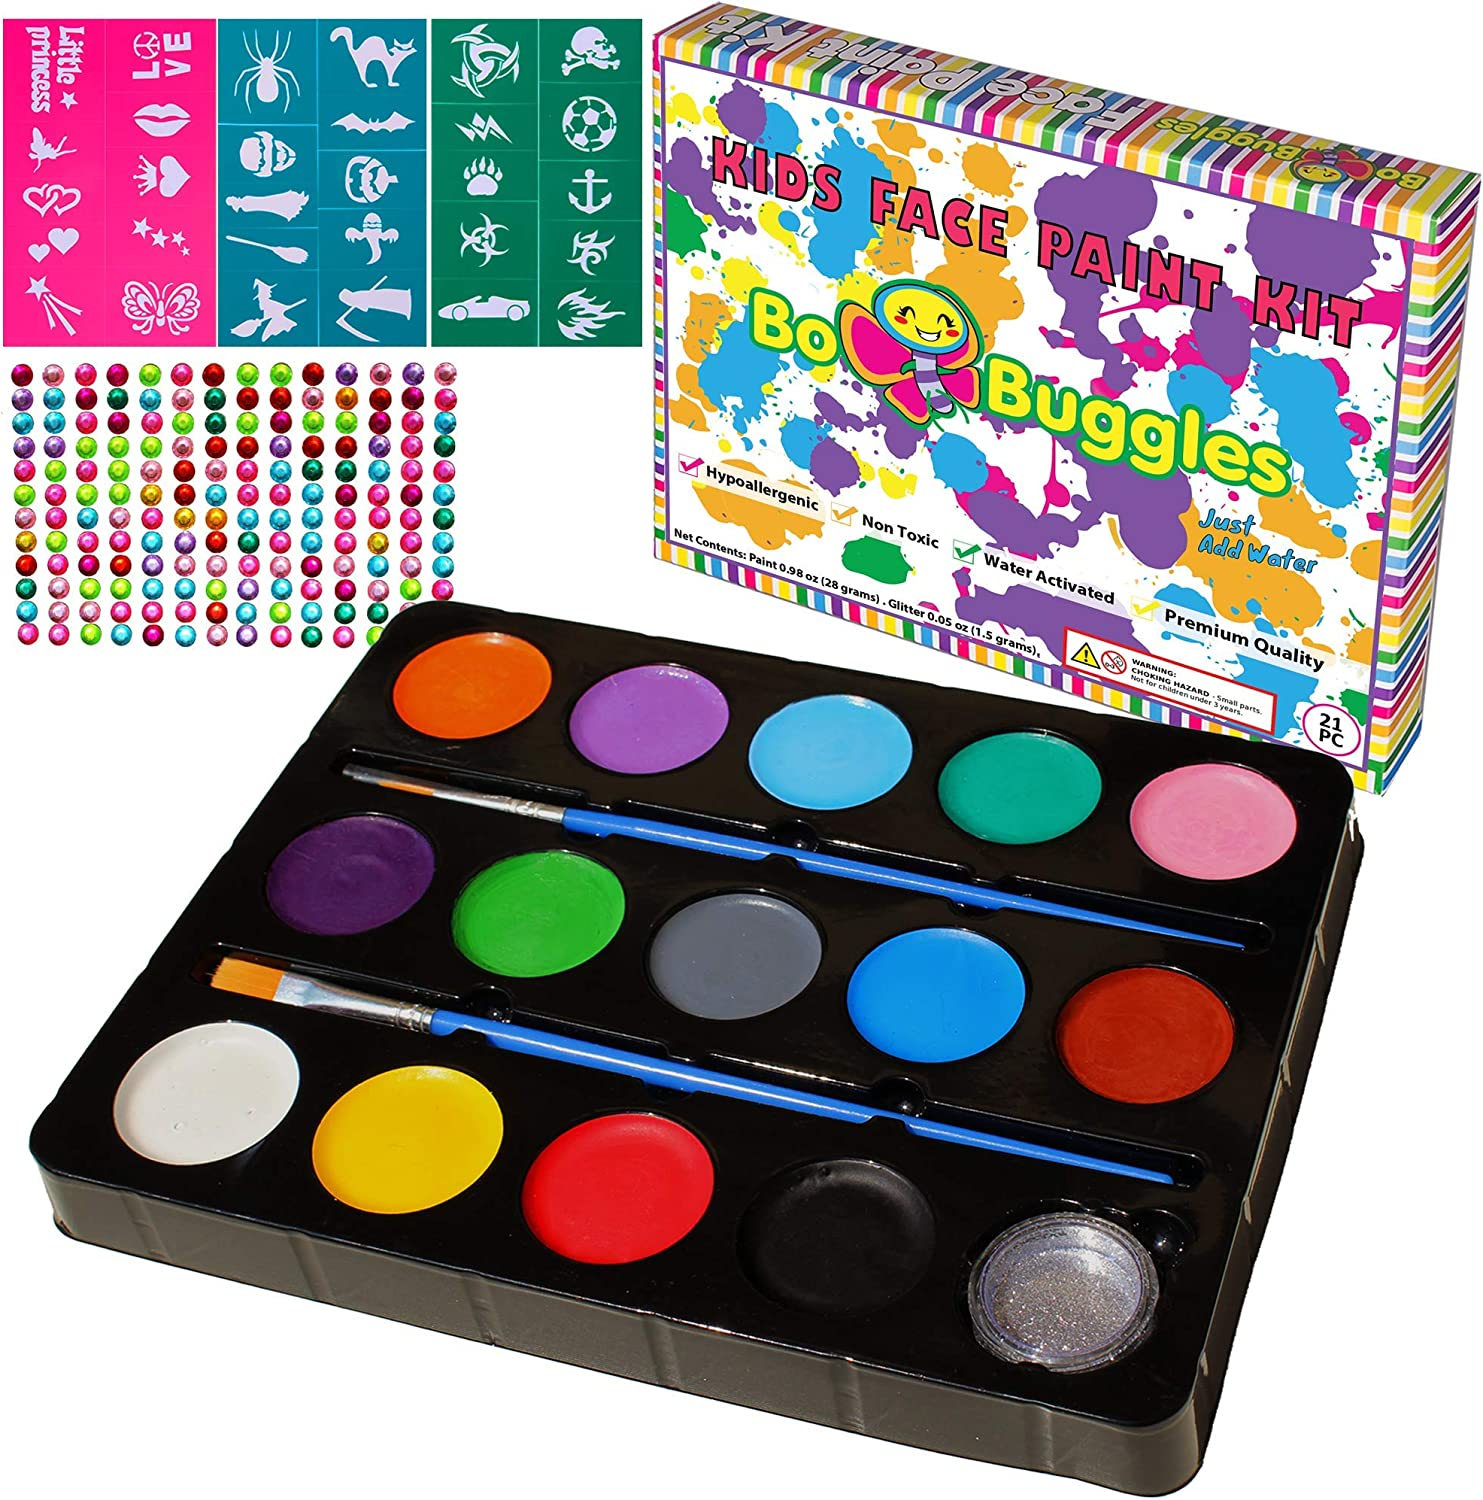 Bo Buggles Face Paint Kit for 30 Kansas City Mall Stencils mart with Professiona Kids